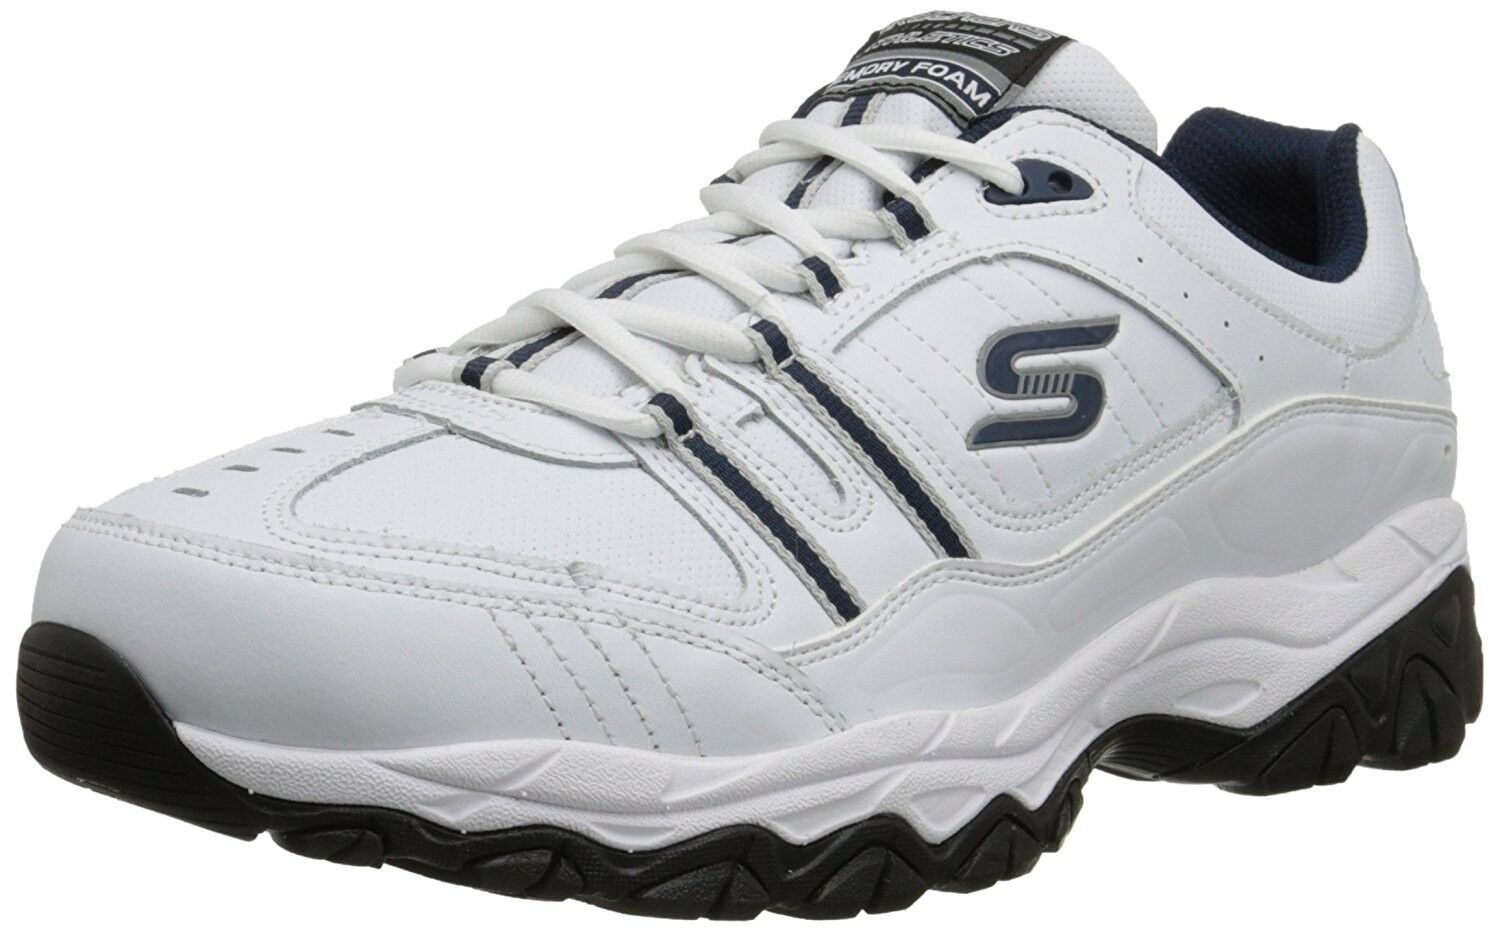 Skechers Sport Afterburn Memory Foam Athletic Shoes NIB Men Sz 10 White / Blue The latest discount shoes for men and women